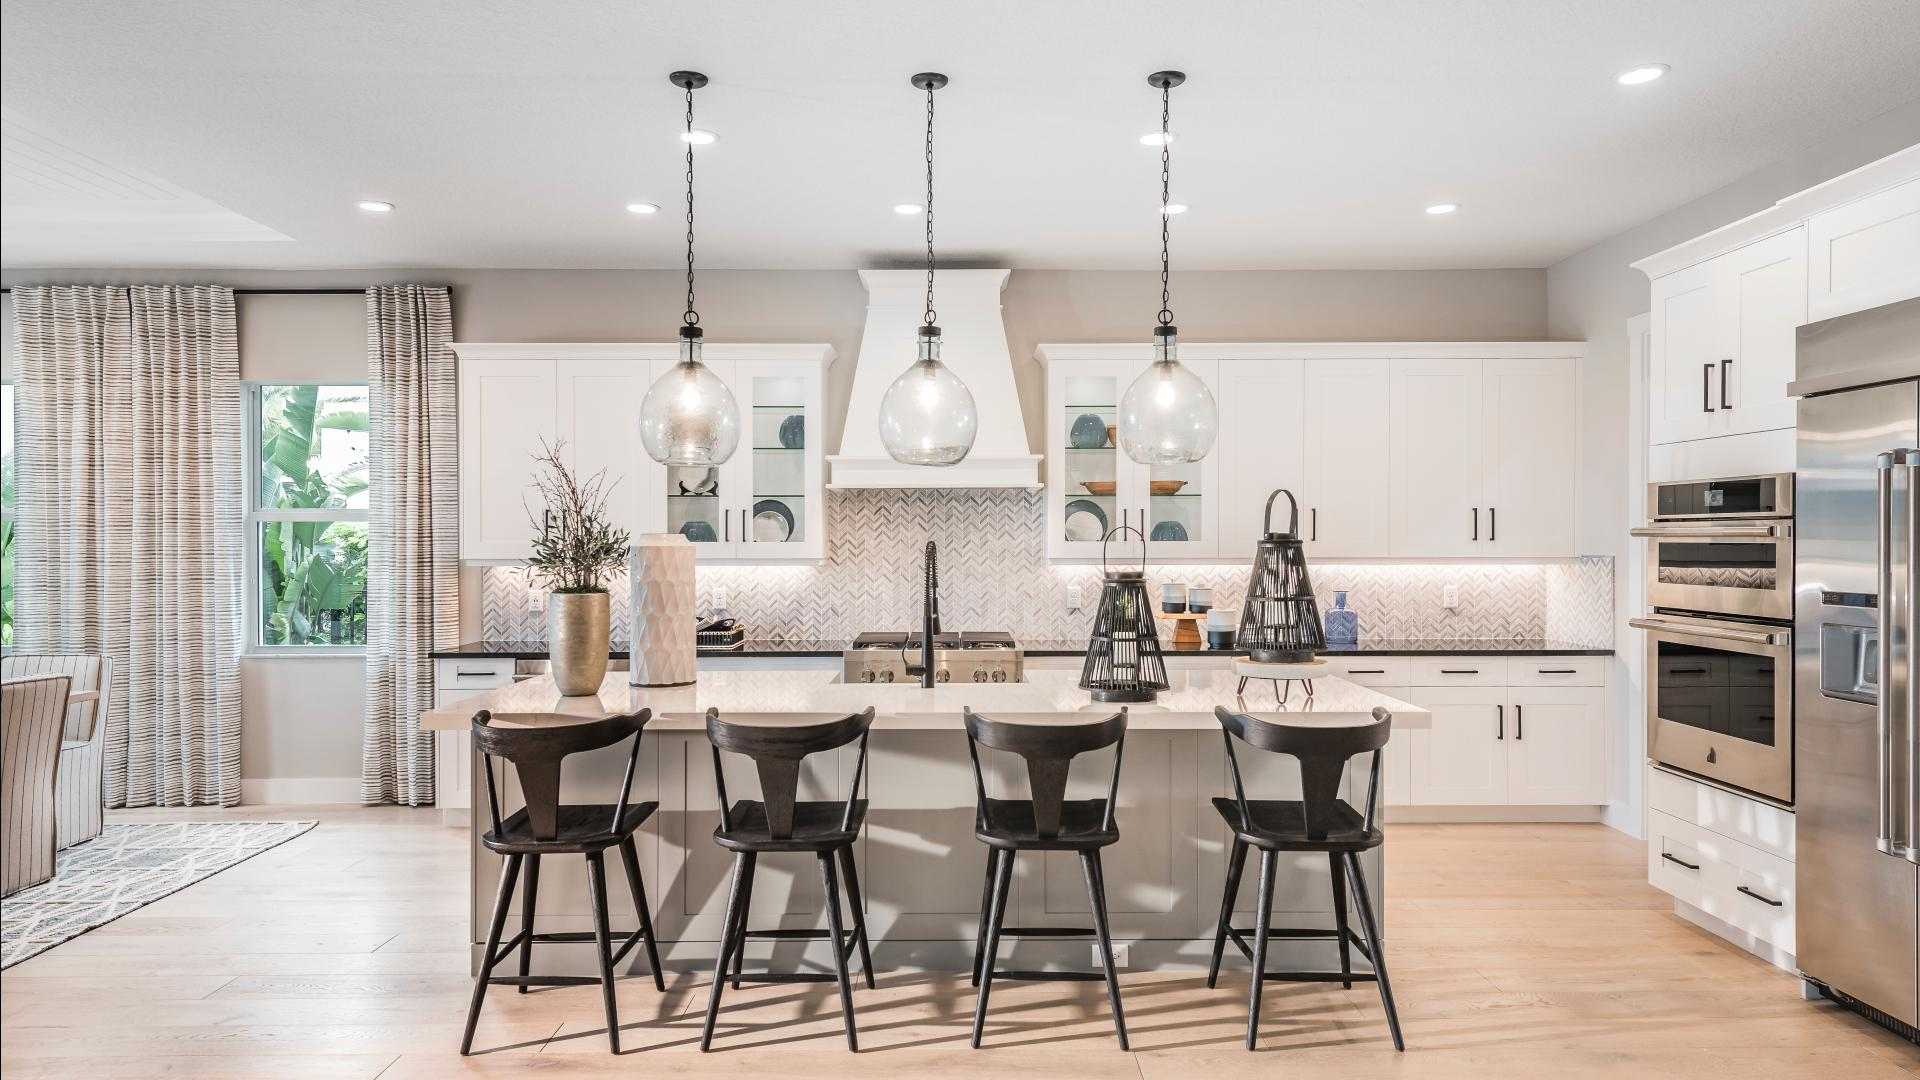 Gourmet kitchens with large center islands